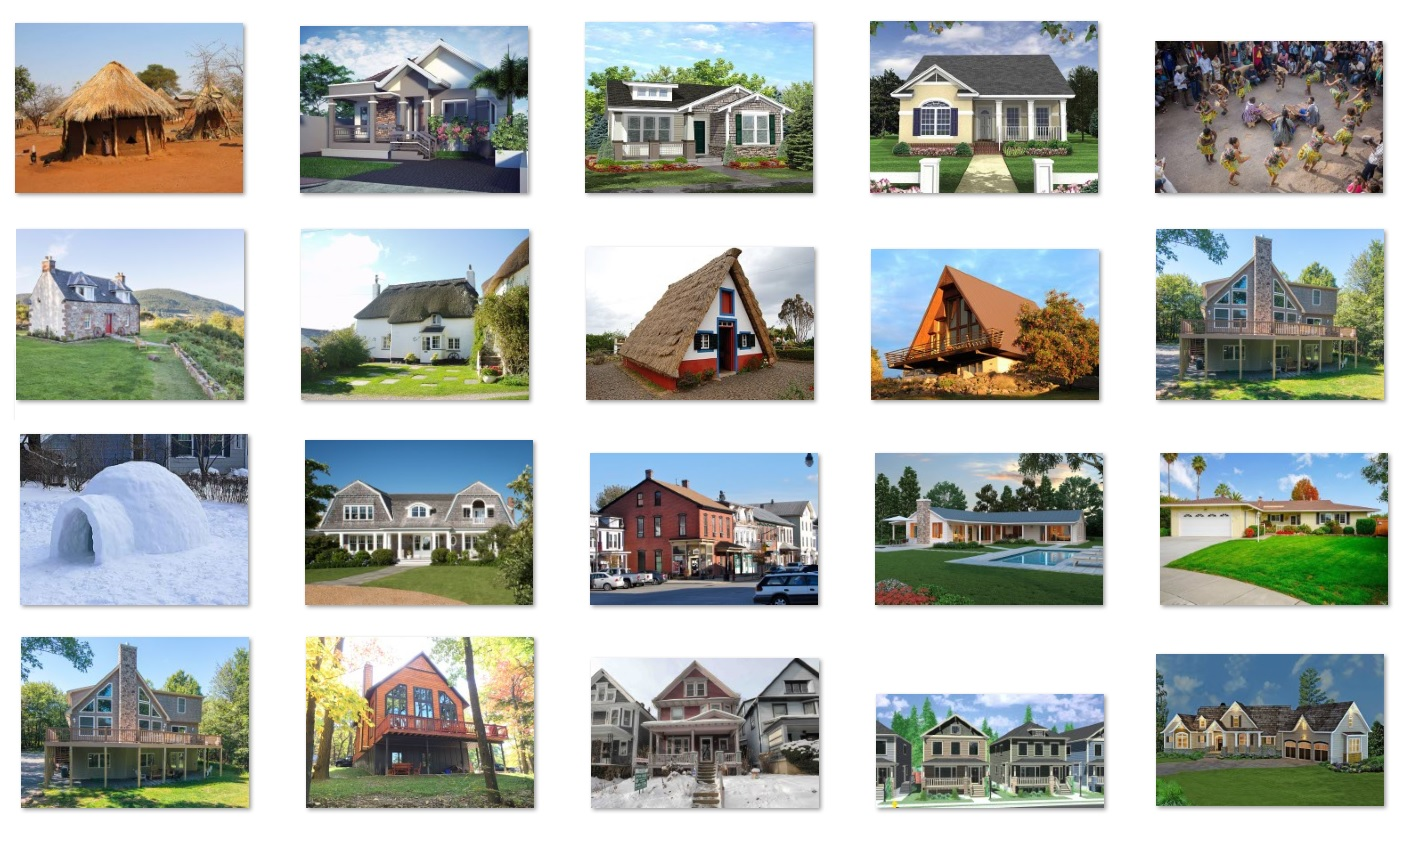 Top American House Styles Amp Designs To